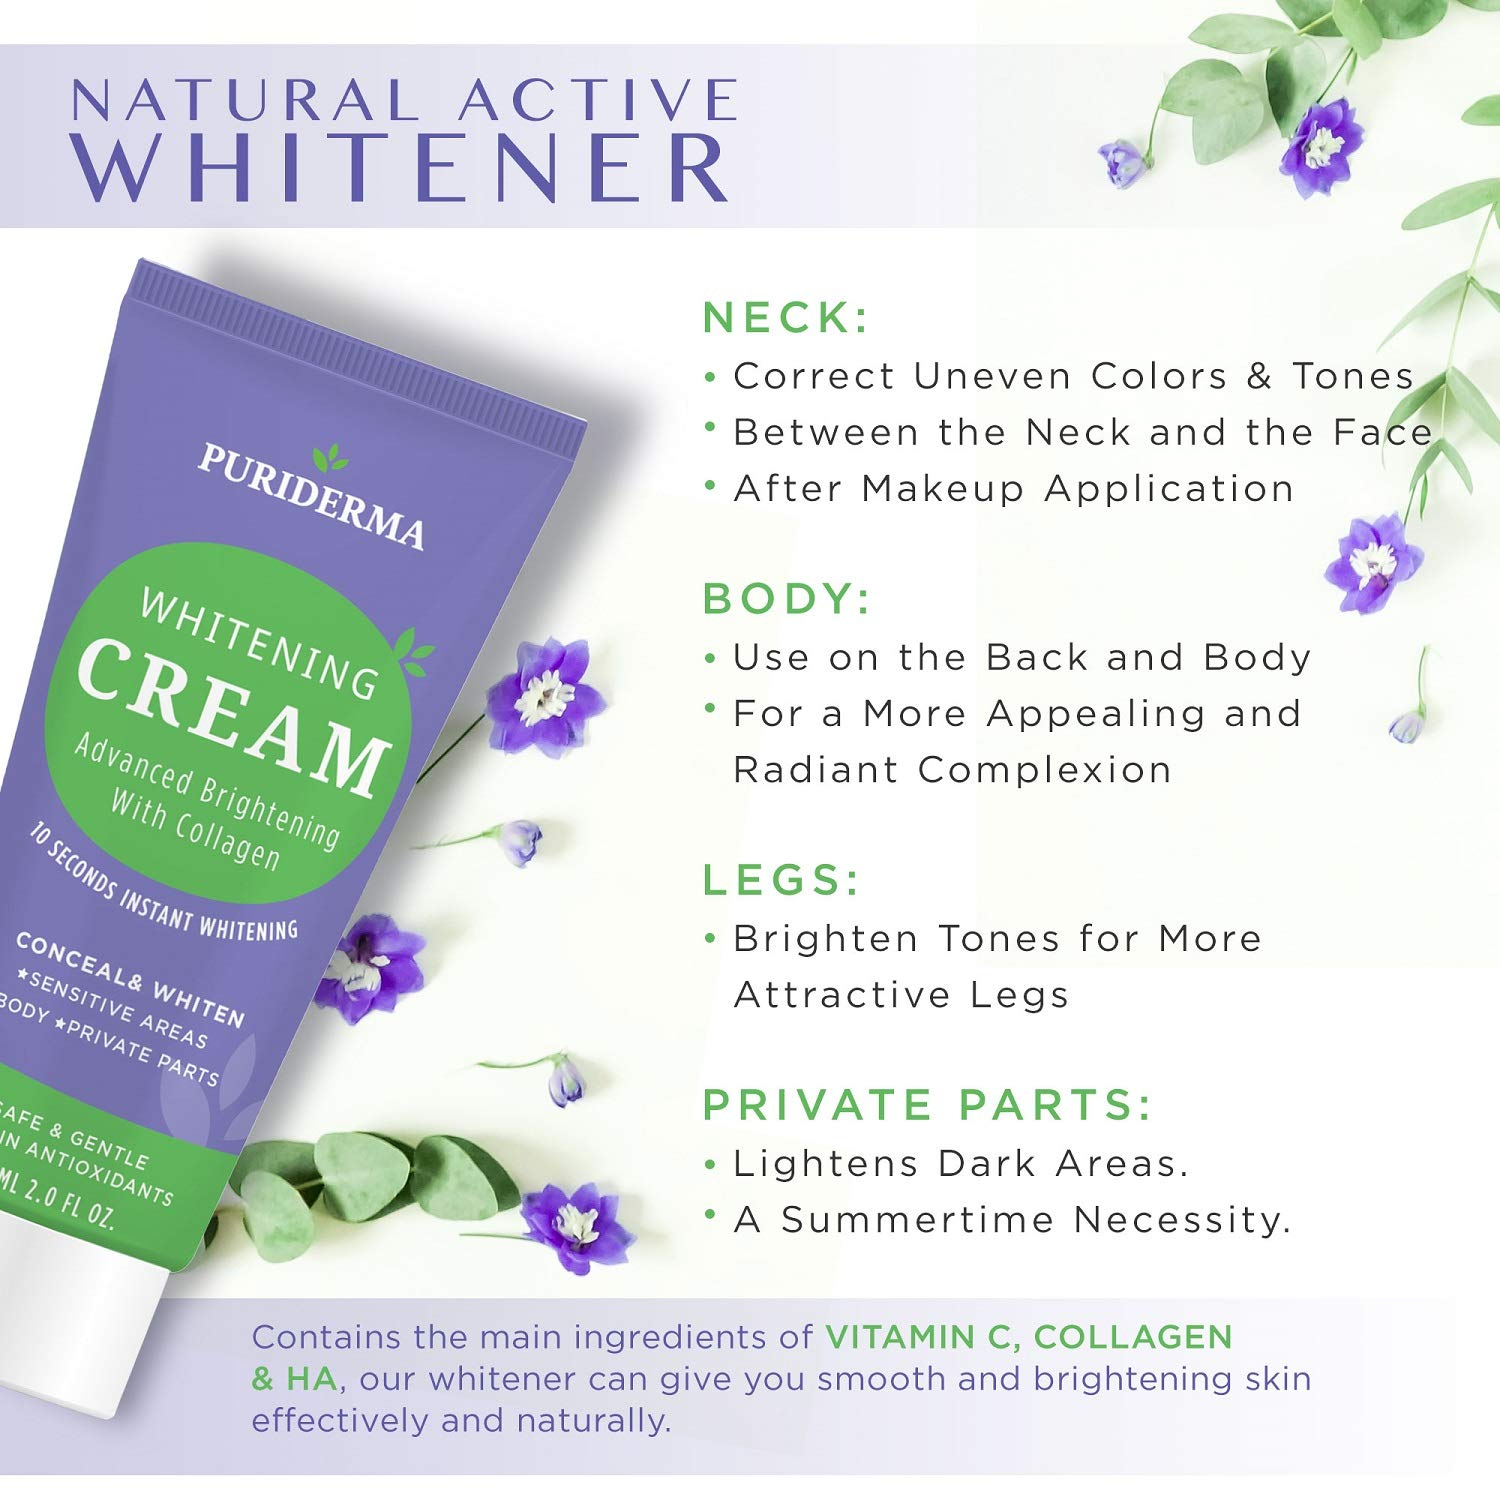 Puriderma All-Body Whitening Cream, Advanced Brightening With Collagen, Whitens and Lightens Discolored and Damaged Skin - for Underarm, Legs, Knees, Bikini Line